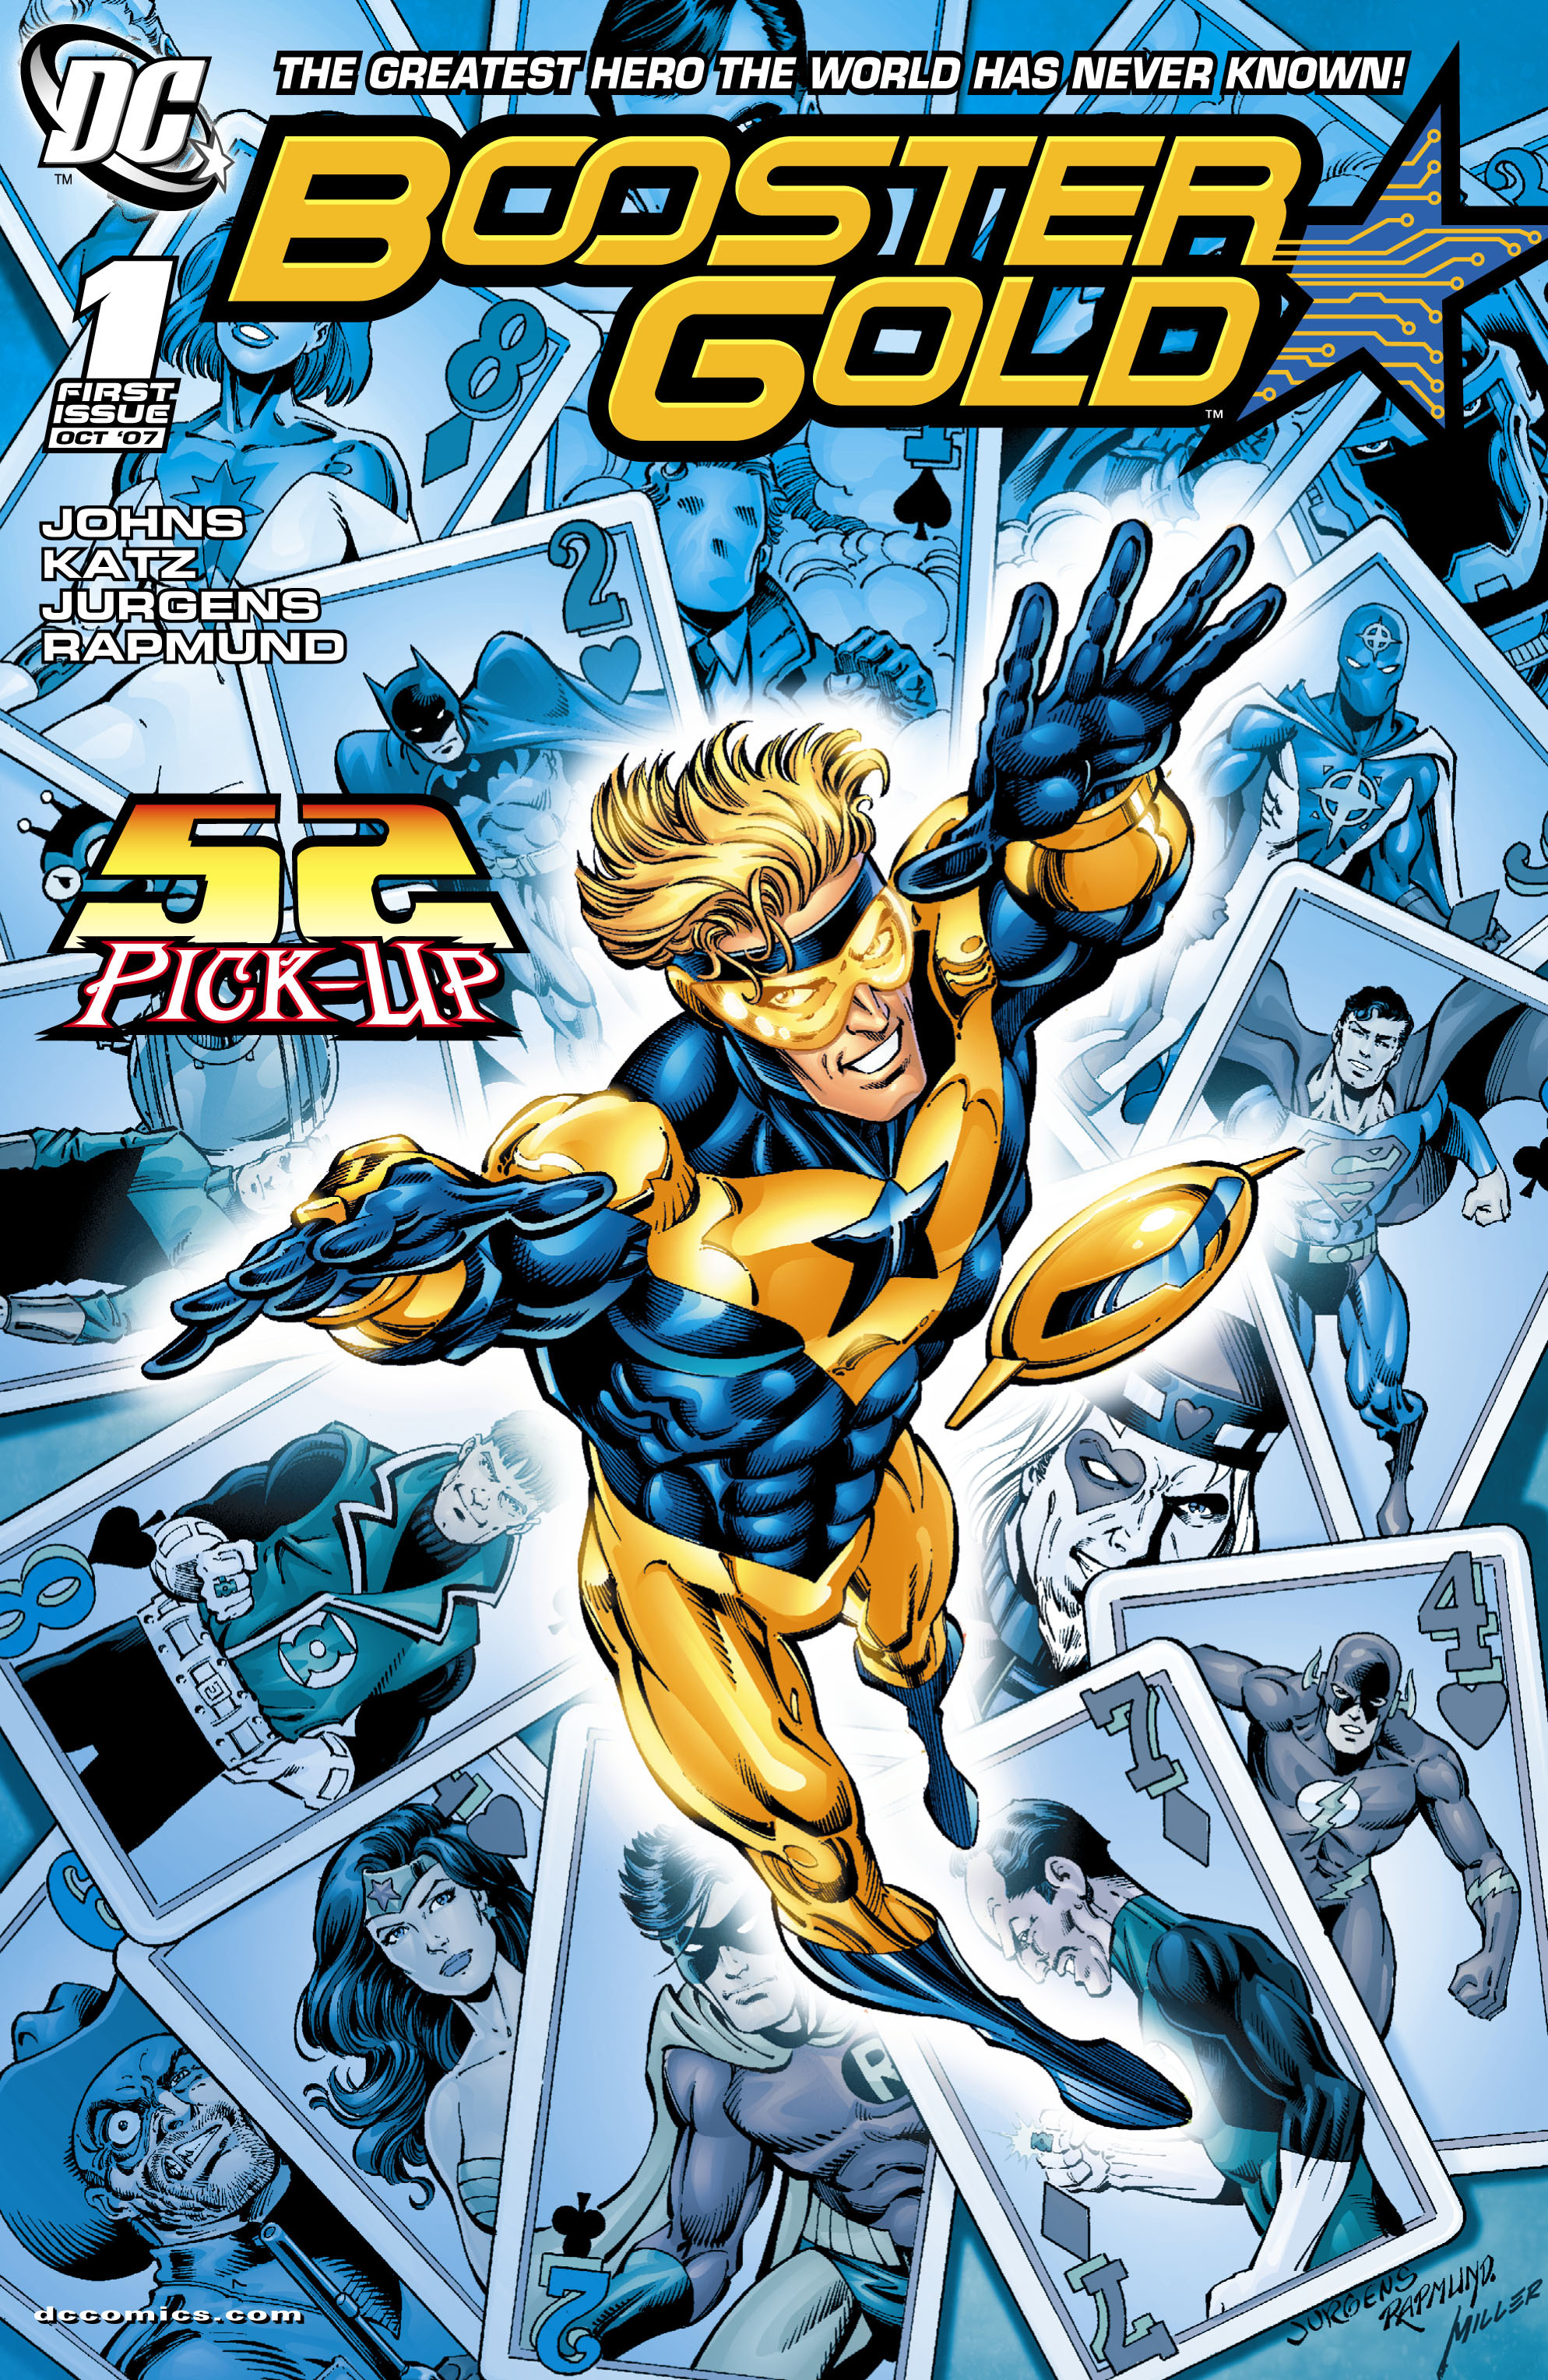 Booster Gold 2007 Issue 1